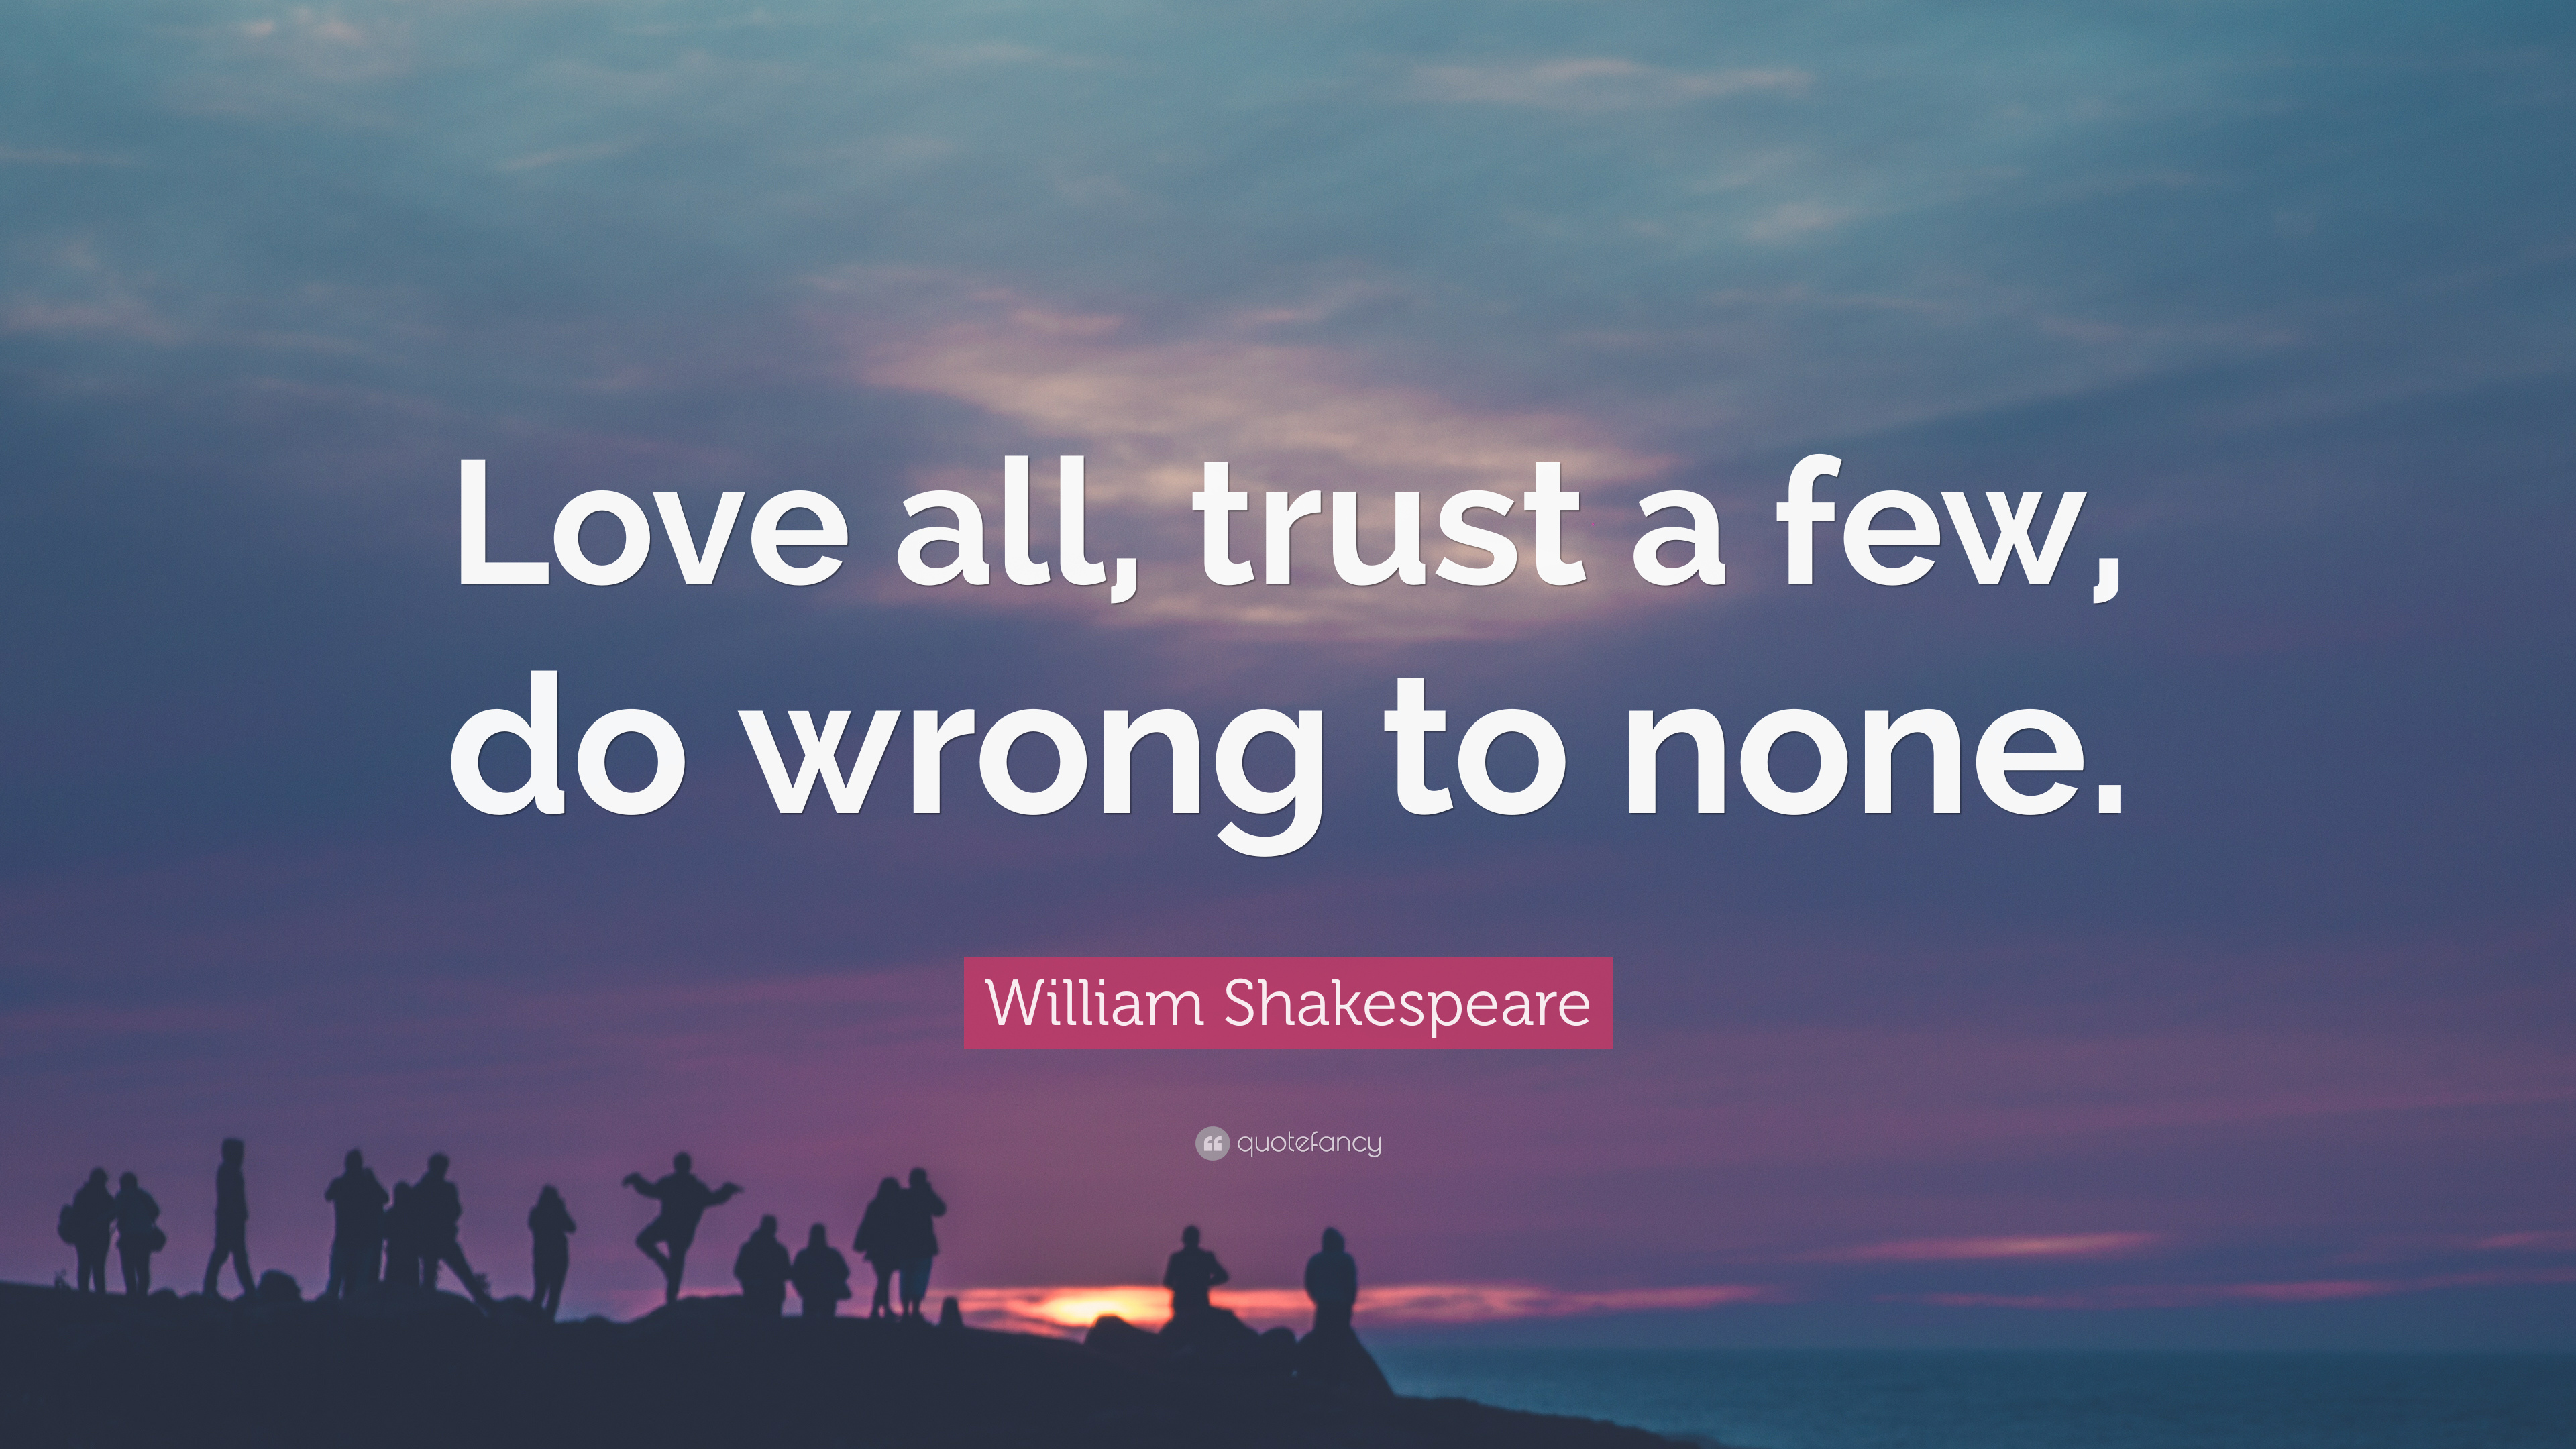 Quotes About Trust: U201cLove All, Trust A Few, Do Wrong To None